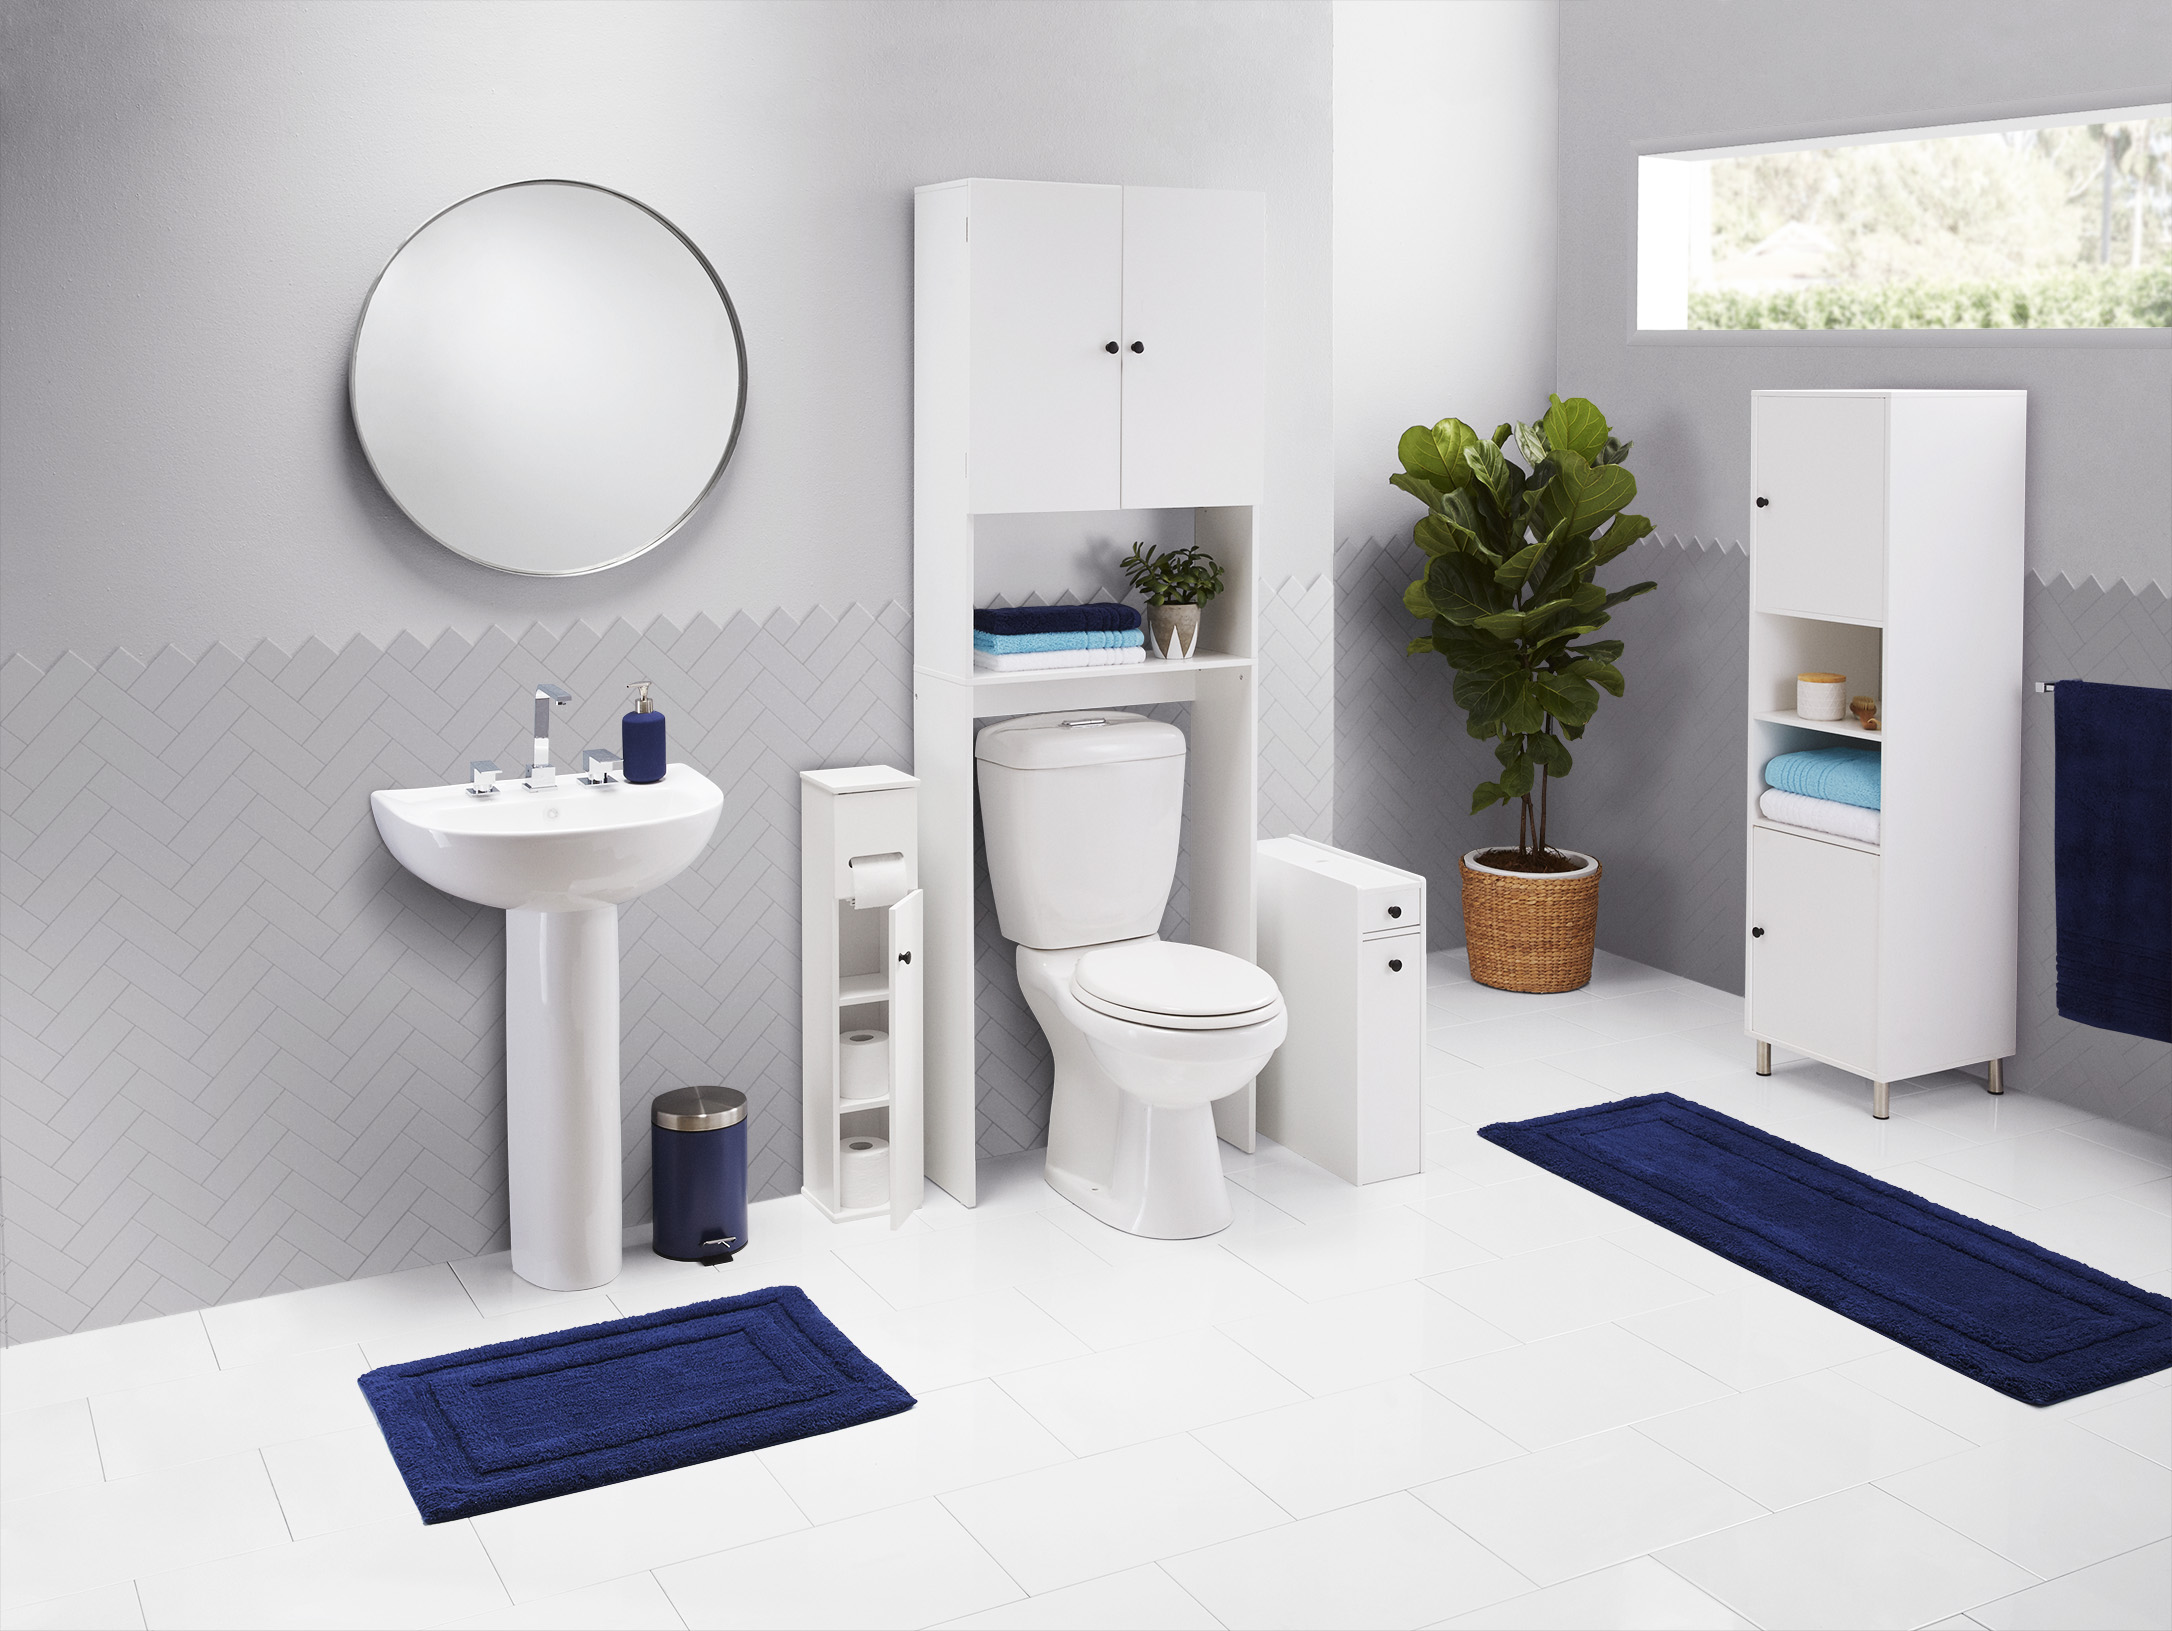 ALDI Bathroom Set AJ Scarcella Designer And Maker Of Things - Bathroom maker